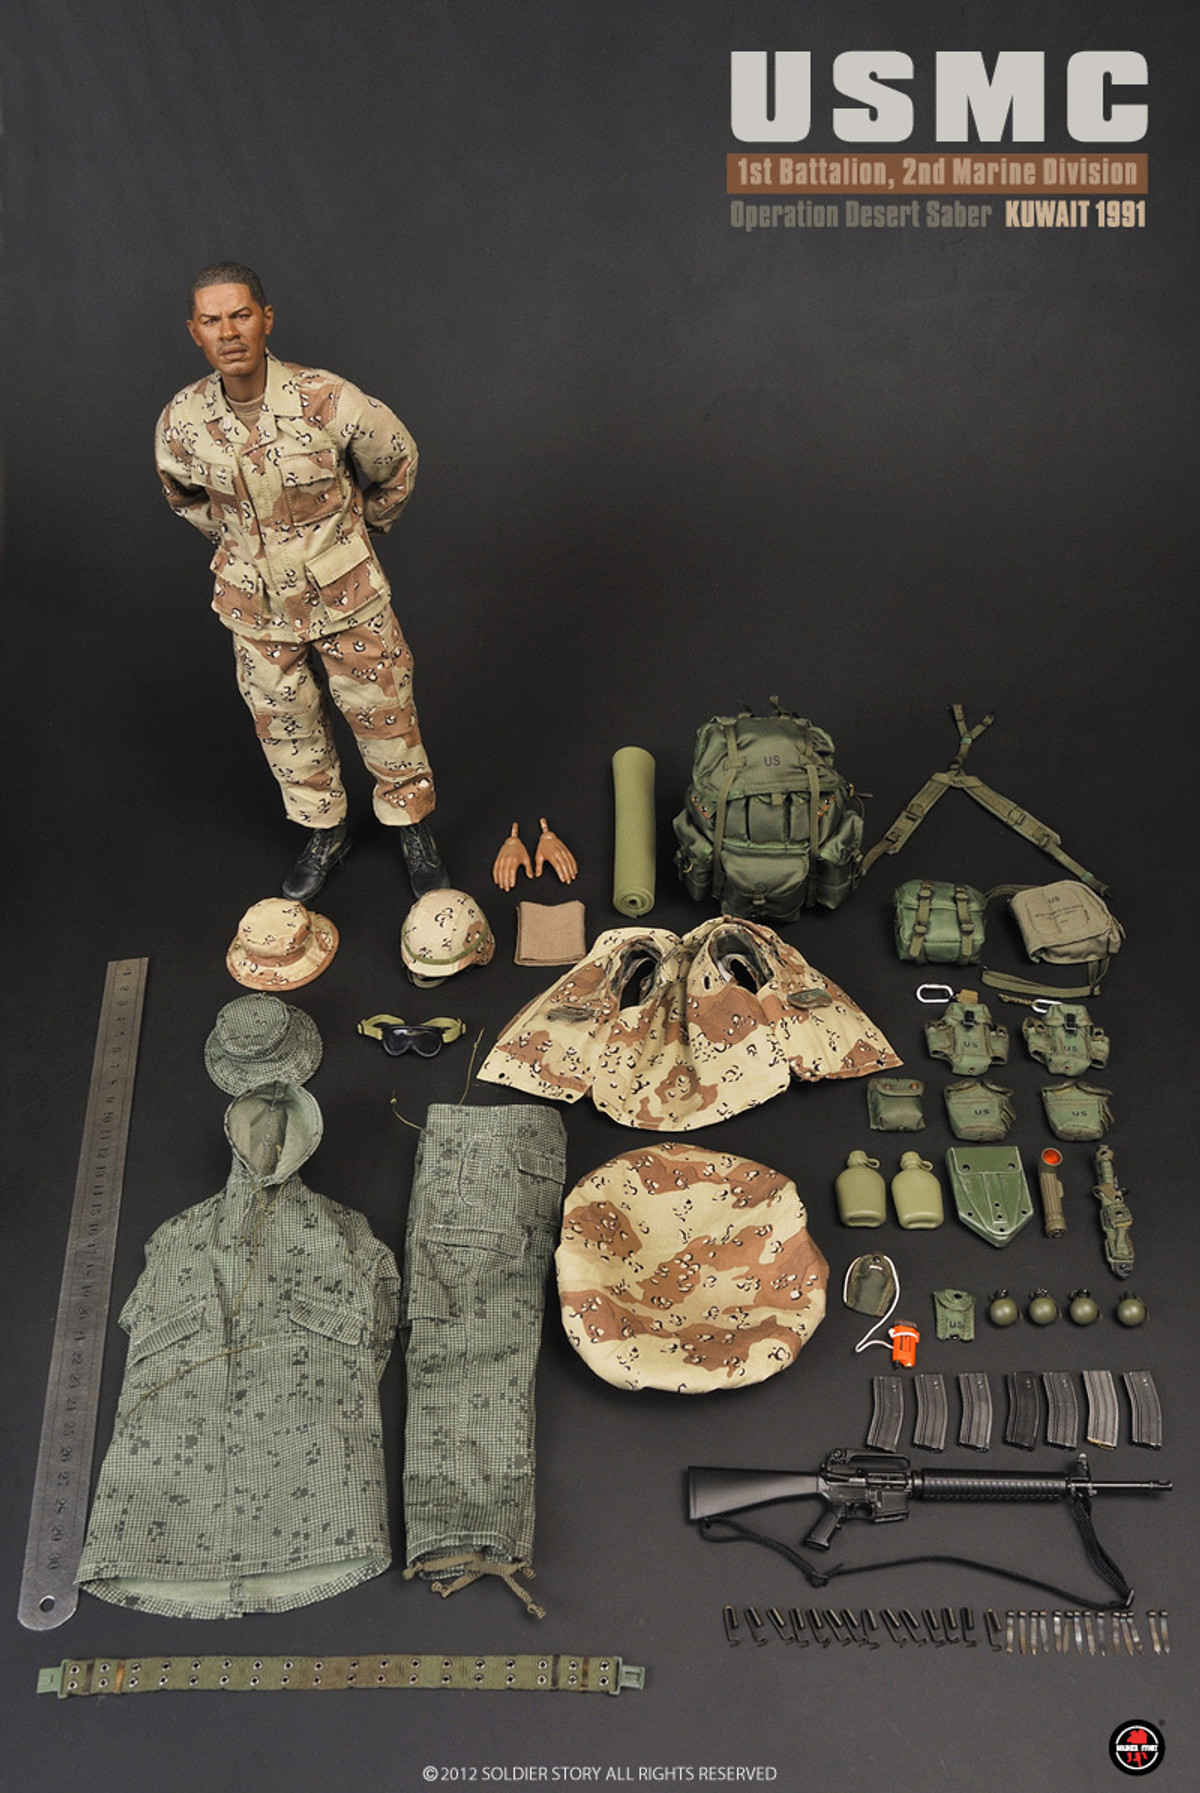 1//6TH SCALE SOLDIER STORY USMC ACCESSORIES 1ST BATTALION 2ND MARINE DIV